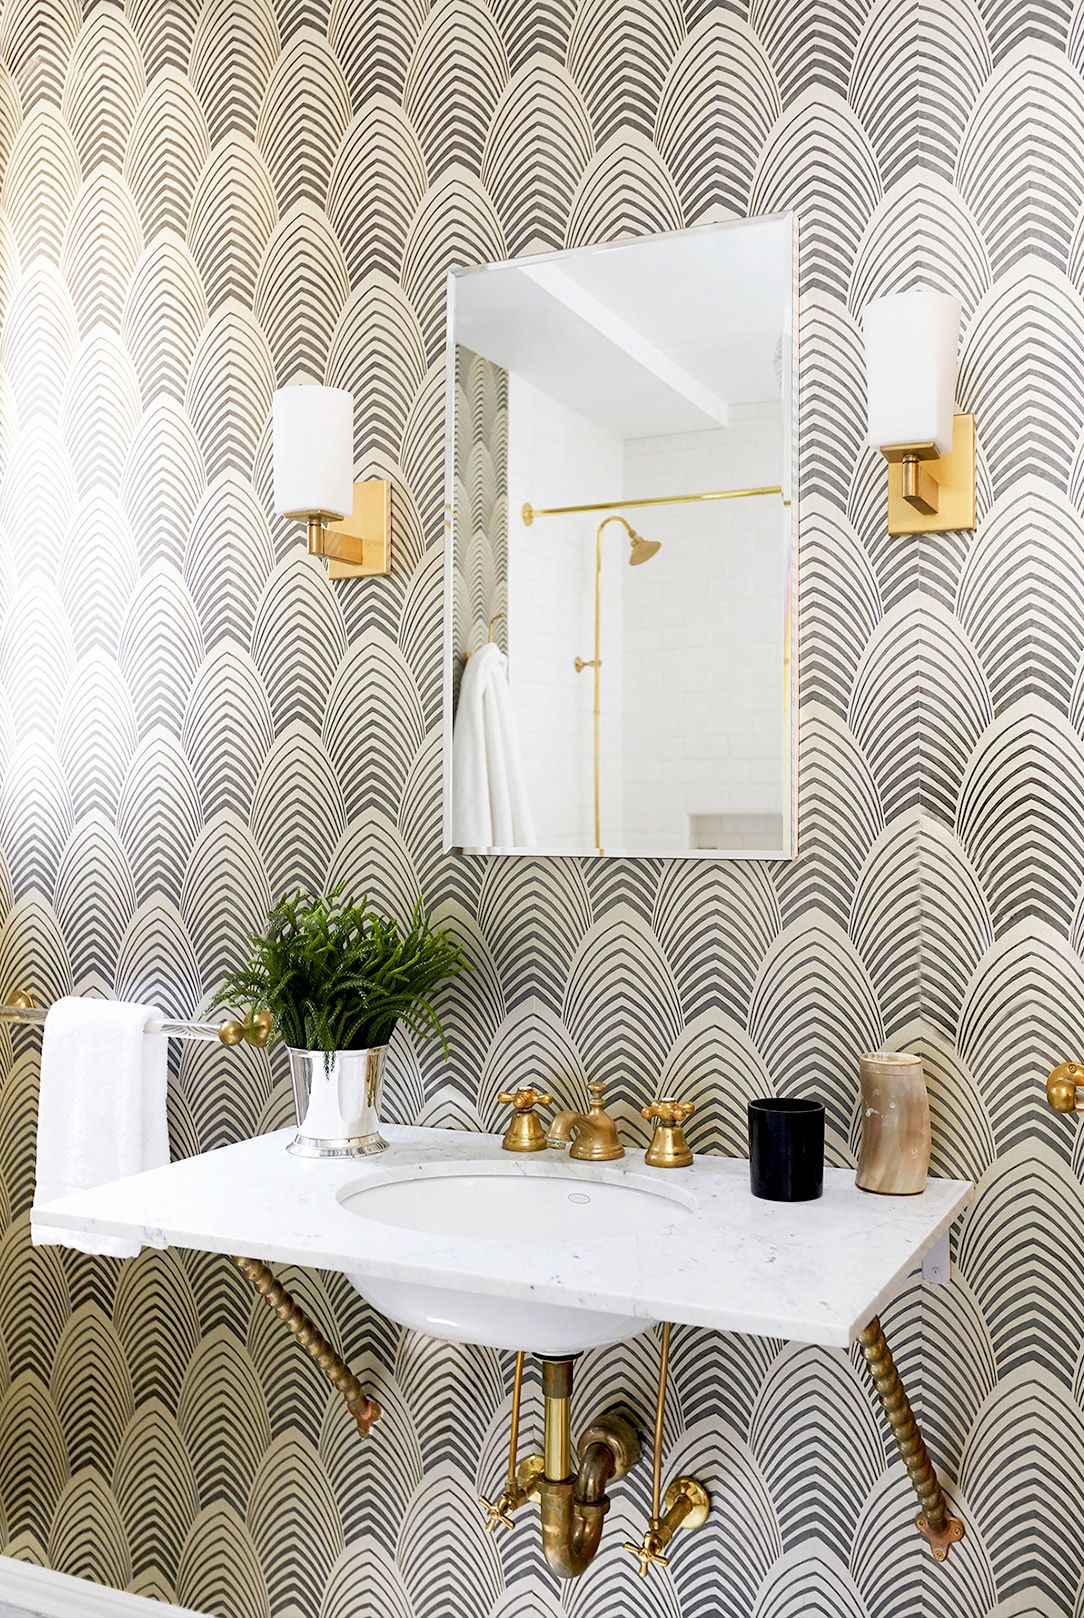 Black and white art deco bathroom - Black And White Wallpaper In Bathroom With Gold Sconces Art Deco